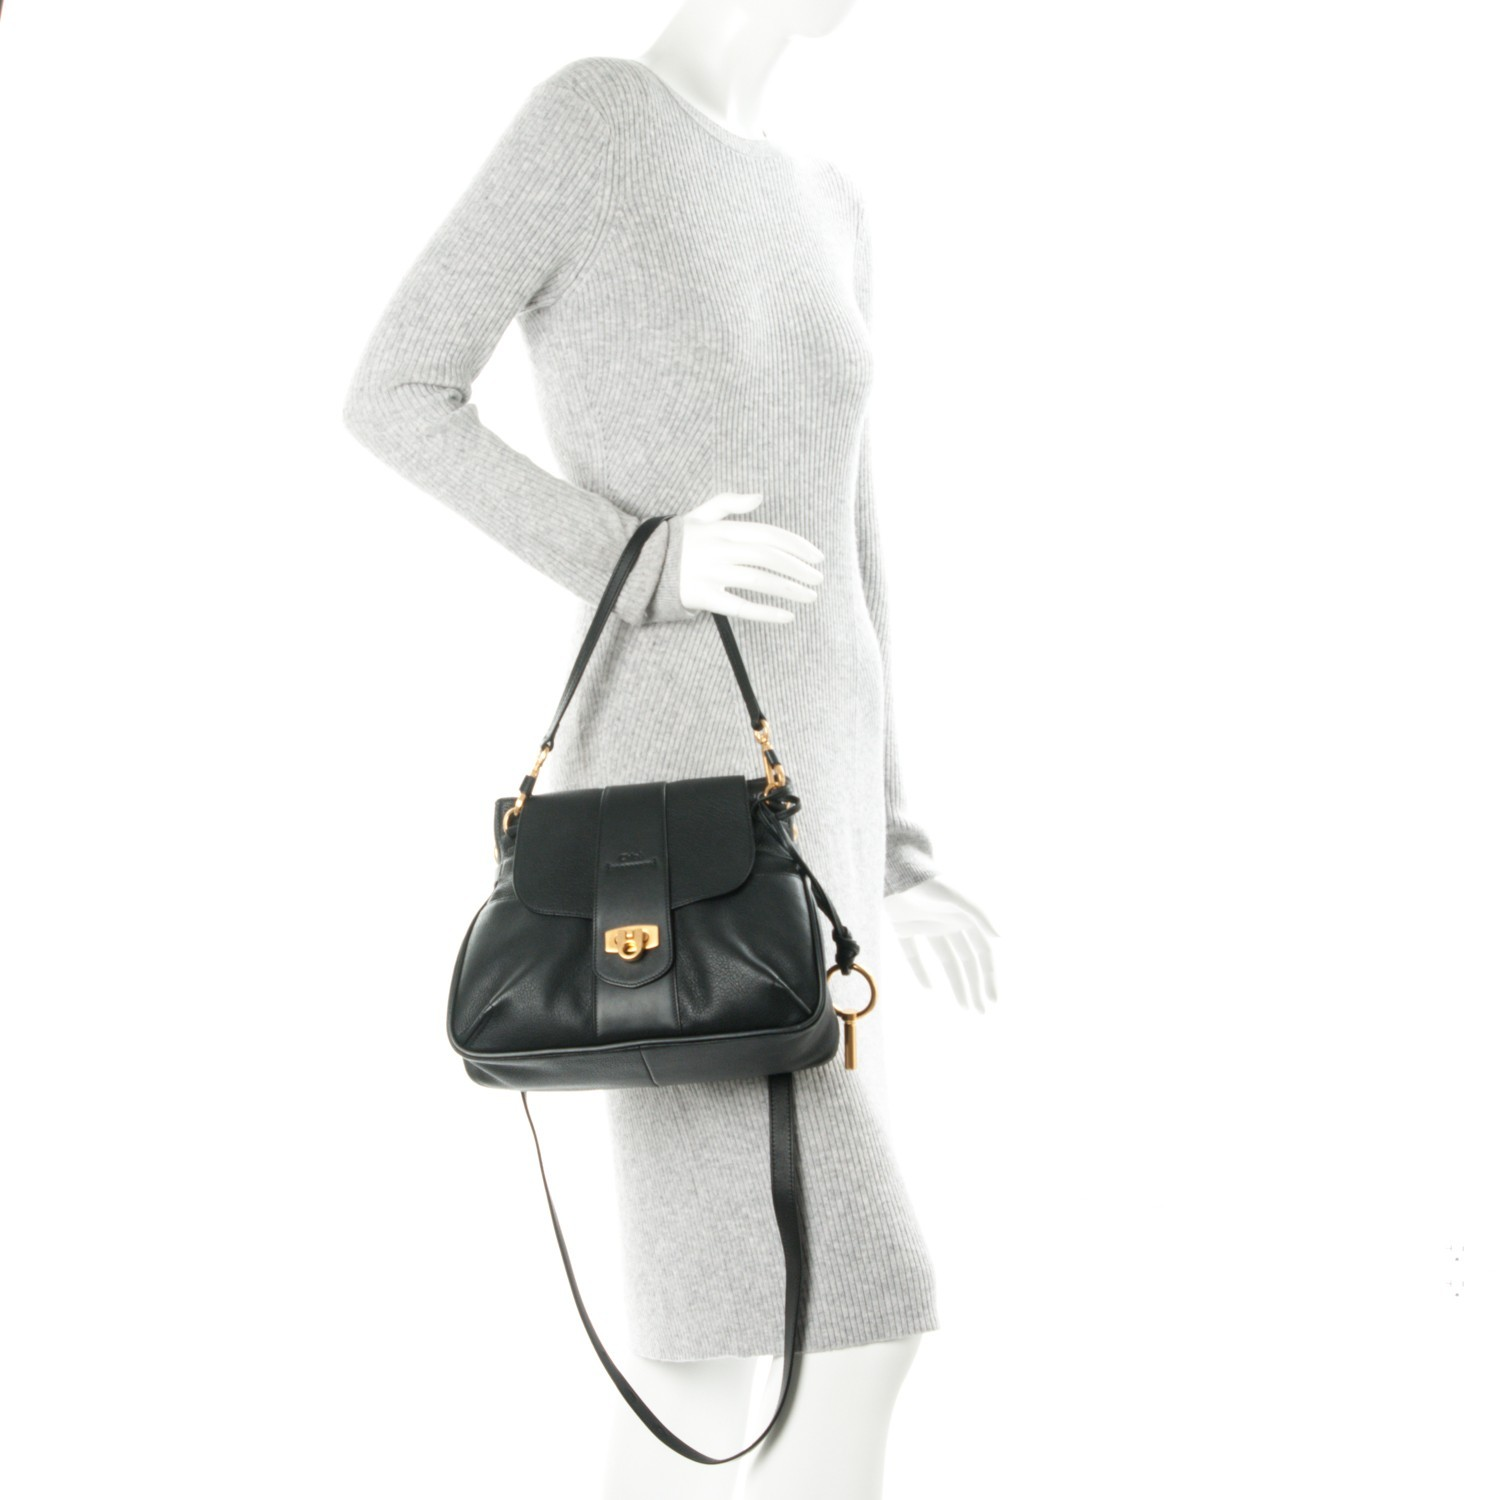 Chloe Lexa Black Lambskin Leather Shouler Bag Retail $1700